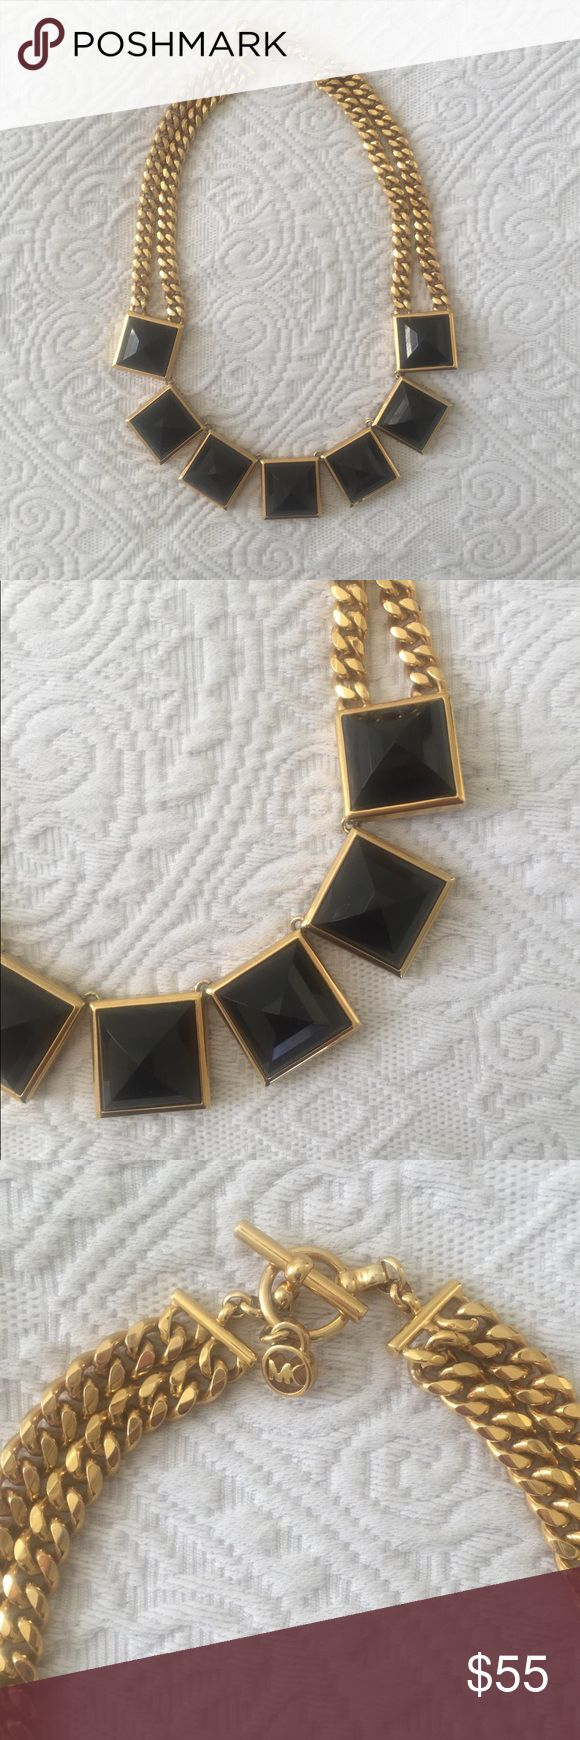 Michael Kors black and gold statement necklace Michael Kors necklace- 7 black squares outlined in gold with 4 gold rope chains leading to a toggle. Very cute!! Hardly worn. Comes with a brown Michael Kors jewelry bag! Authentic Michael Kors. Michael Kors Jewelry Necklaces